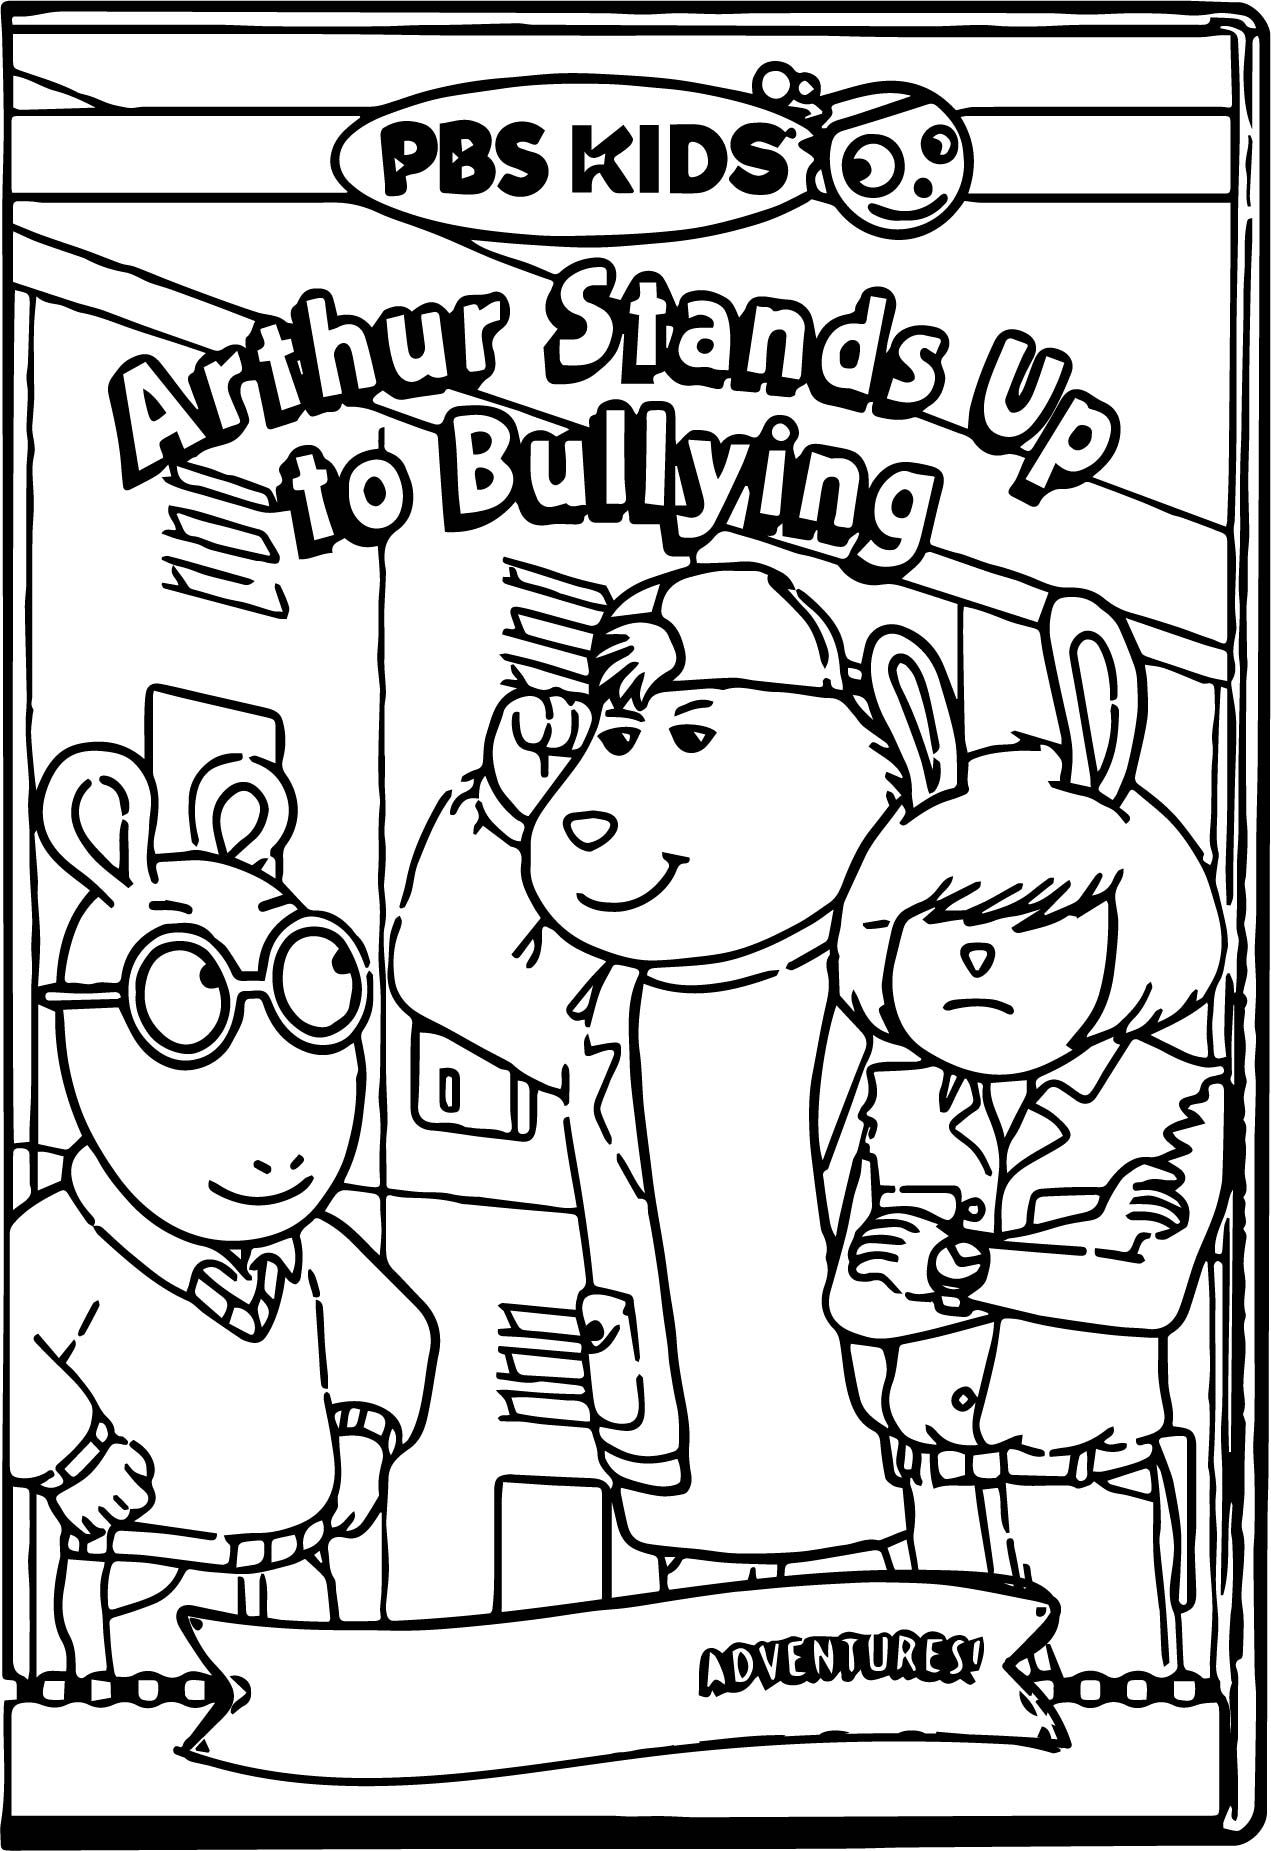 Cool Arthur Pbs Kids Coloring Pages